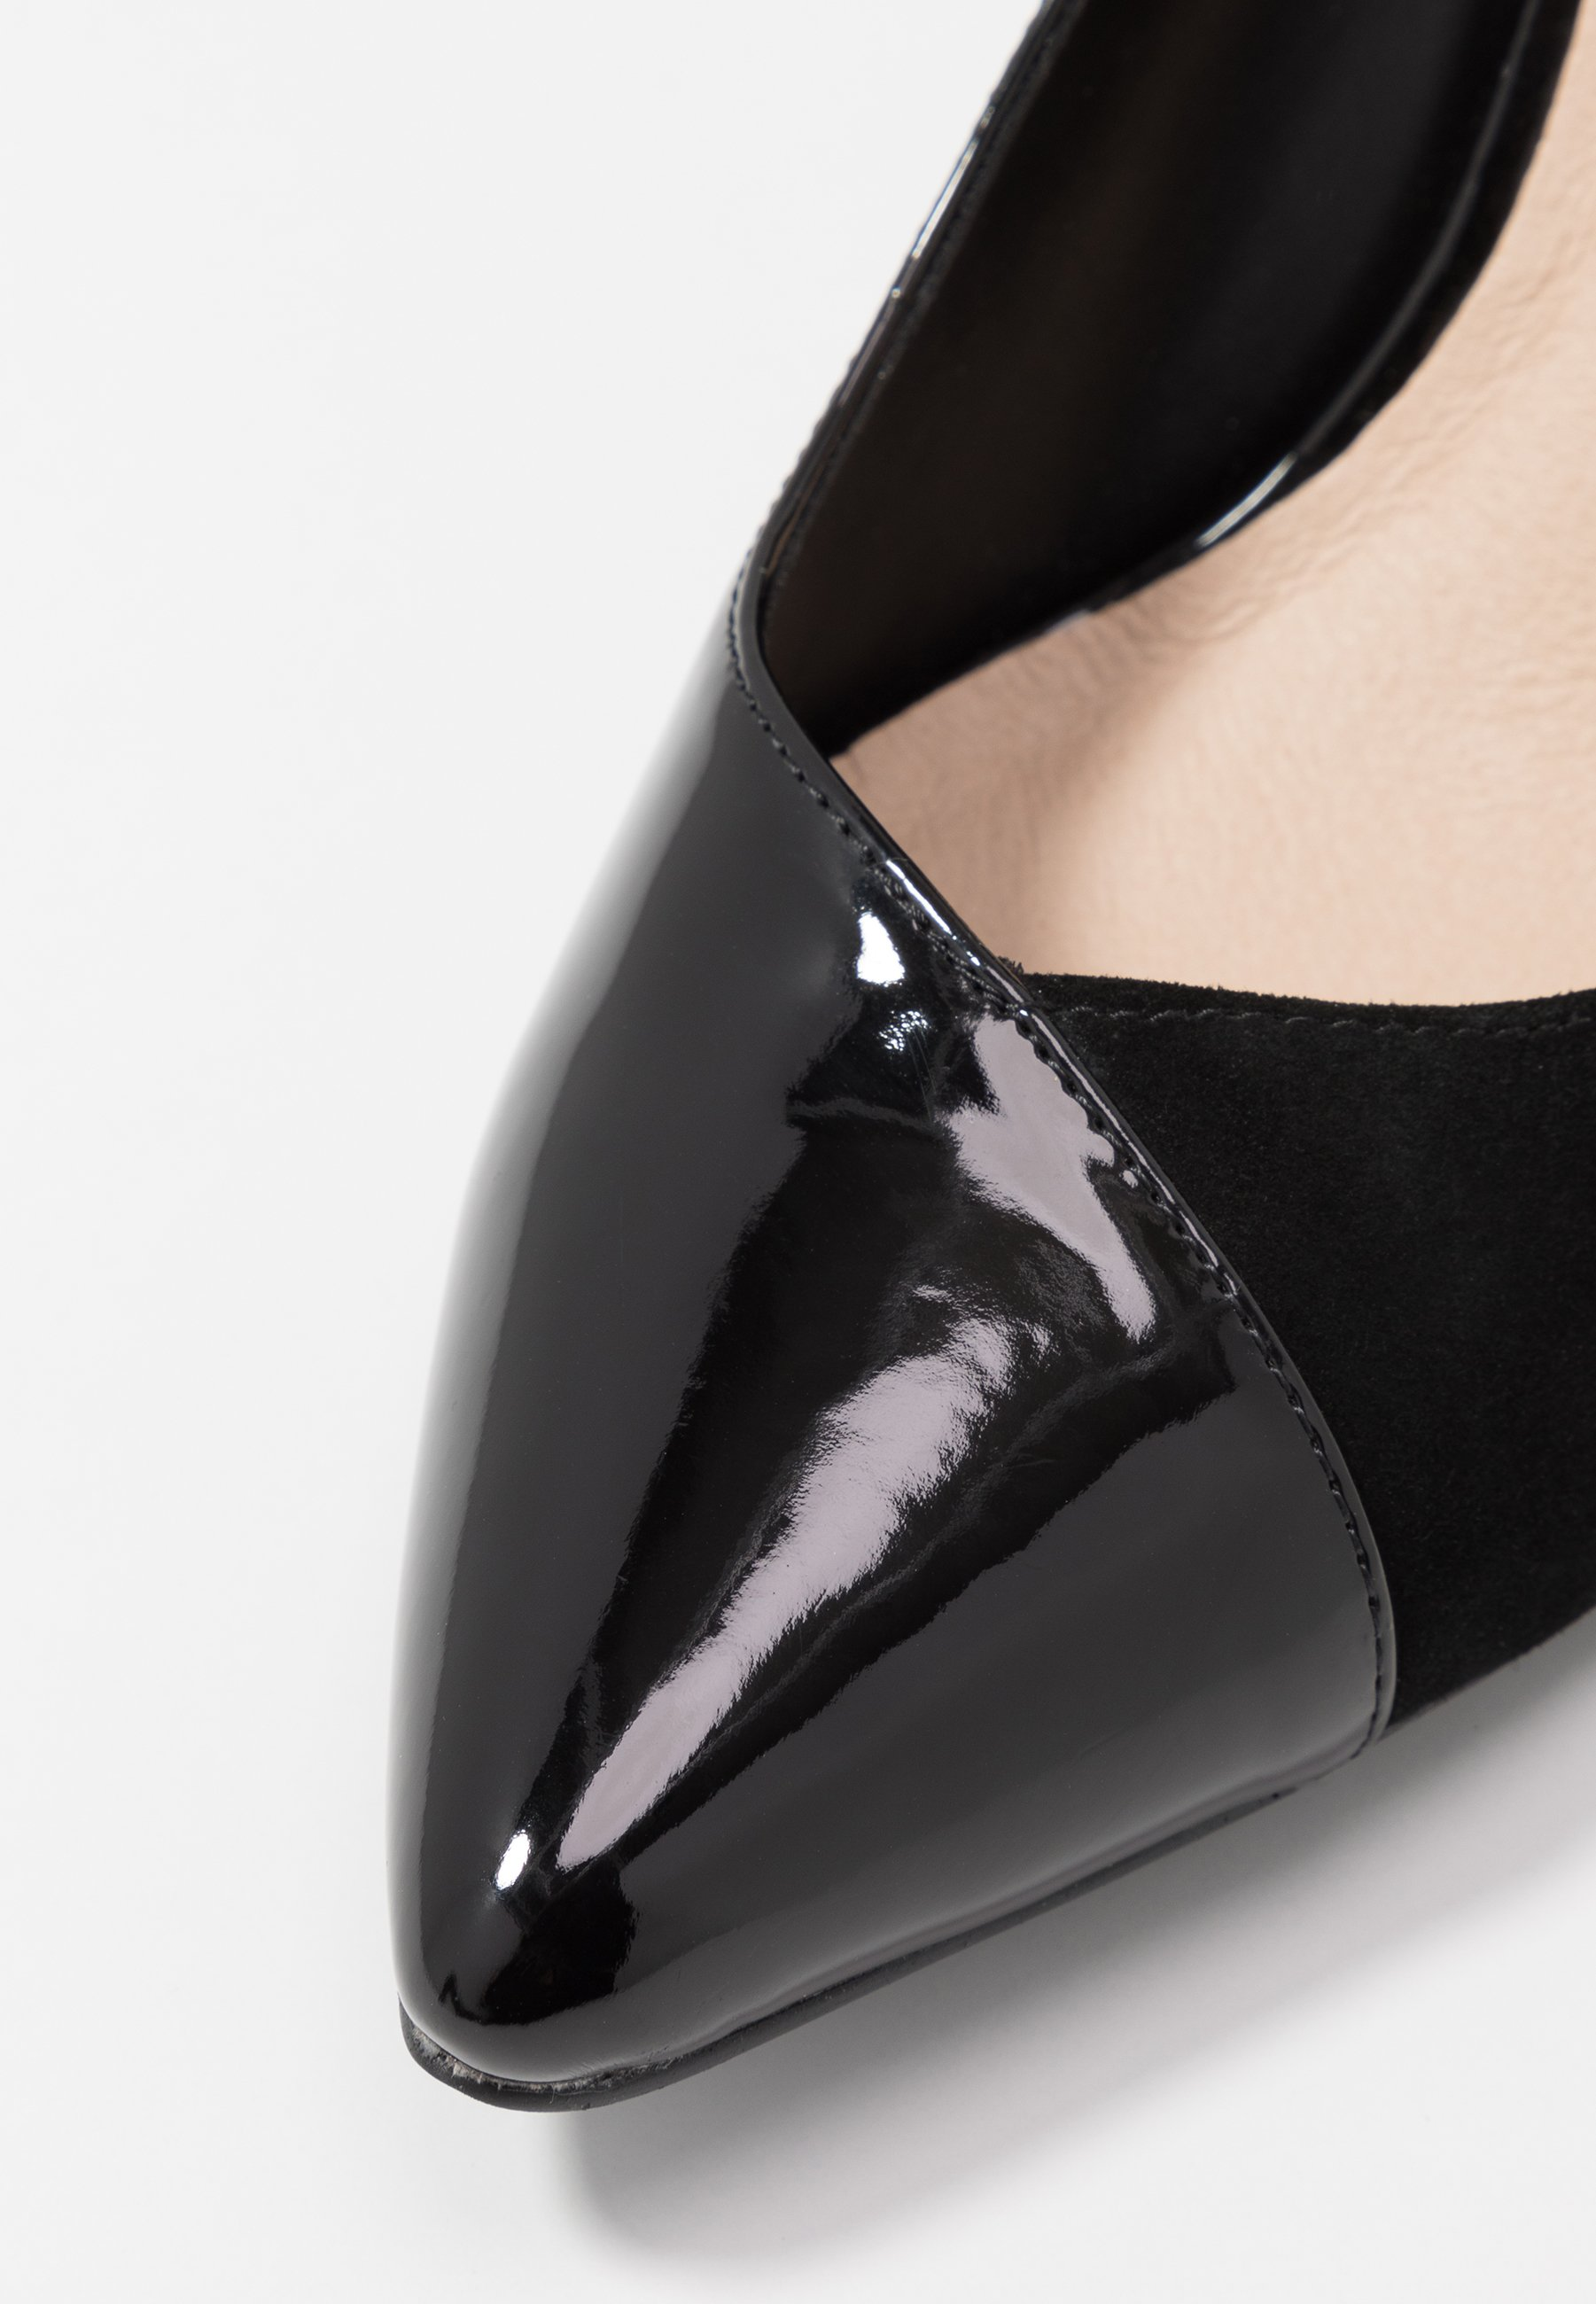 Best Authentic Safe Payment Women's Shoes Anna Field LEATHER PUMPS High heels black 7uzEC9f9g AeEyOiNRF